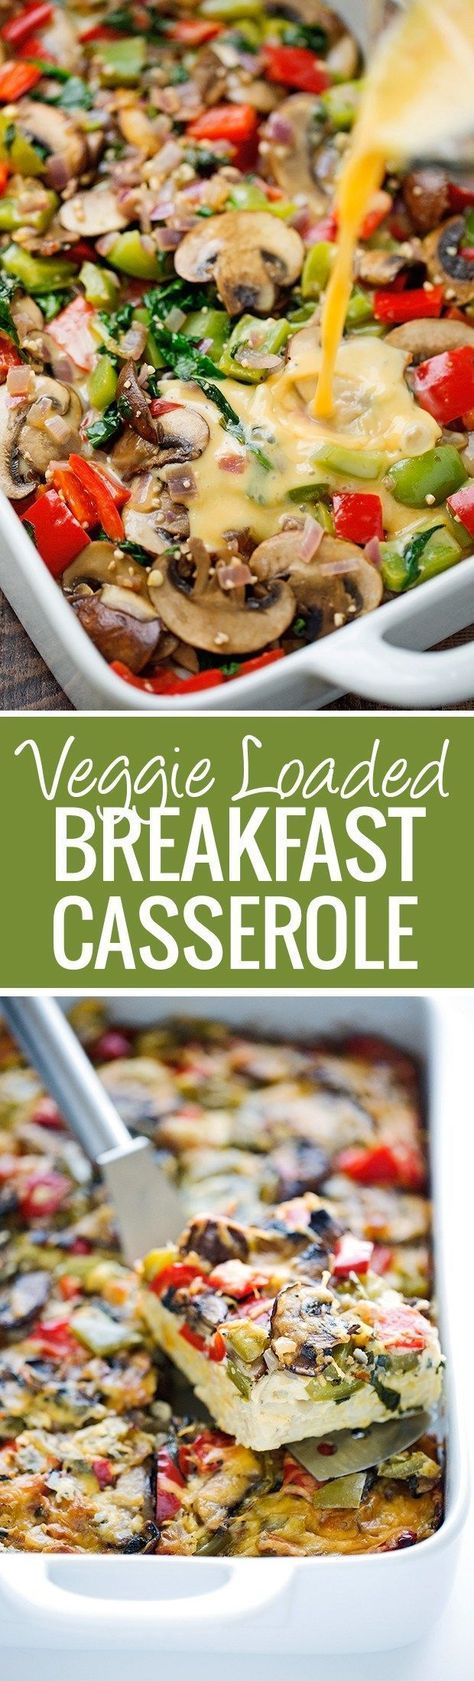 Primal Veggie-Loaded Breakfast Casserole Recipe   Little Spice Jar - Made with hash browns and all your favorite veggies! Add in rotisserie chicken, crumbled sausage or anything else you please - it's totally customizable and packed with nutrients!